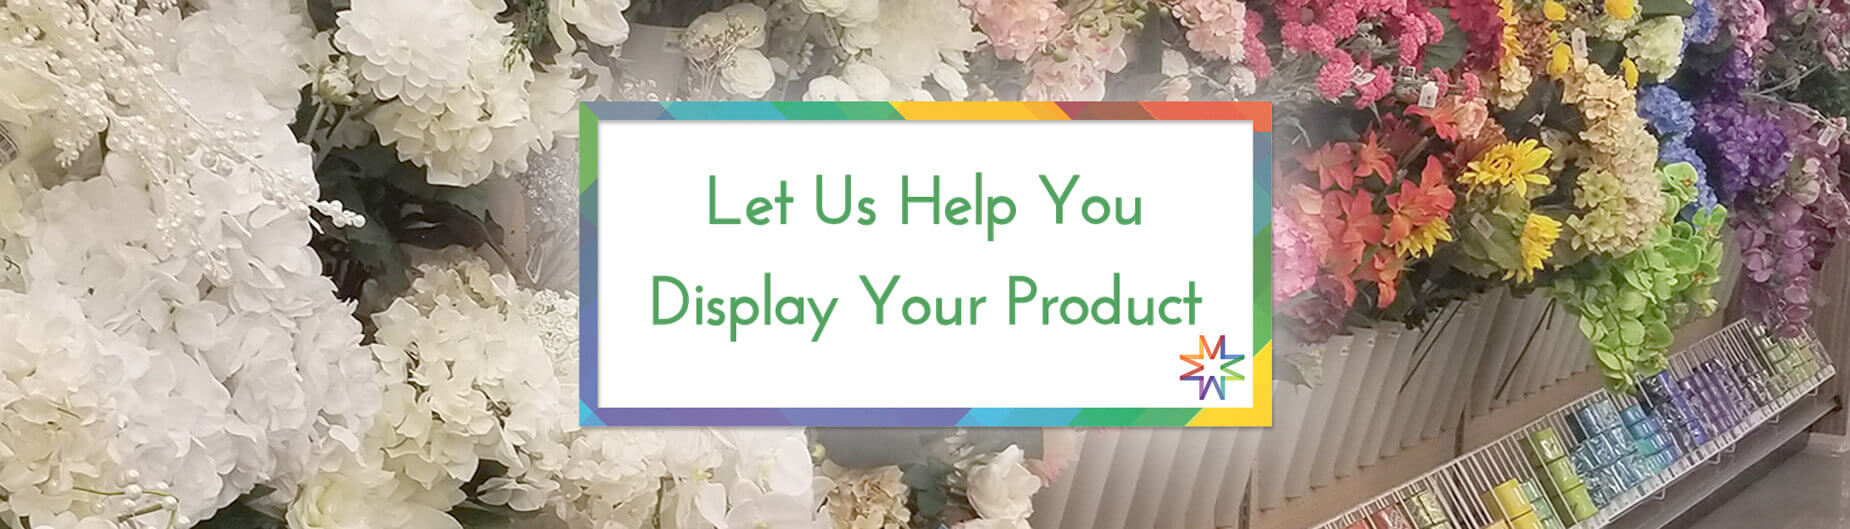 Let us help you display your retail product